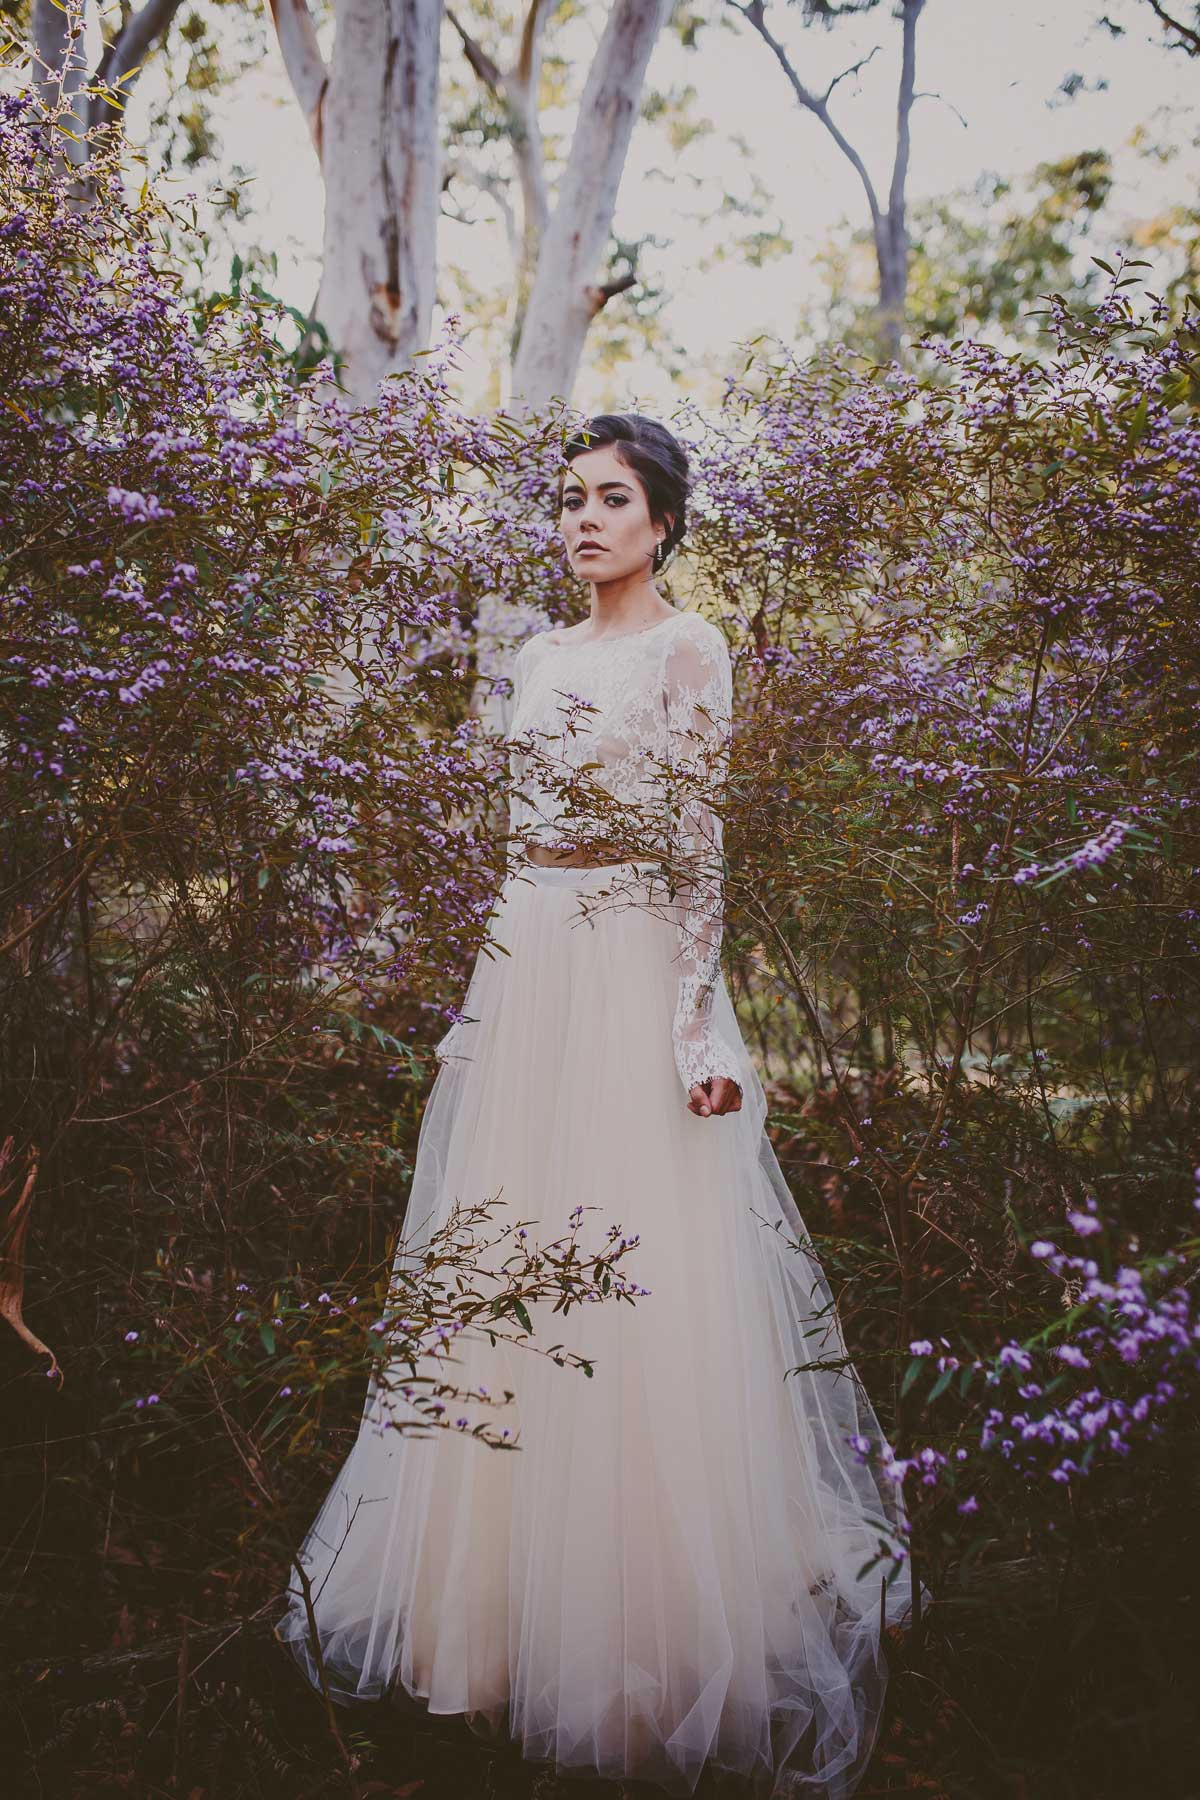 bridal-beauty-the-brides-tree-photo-shoot.jpg